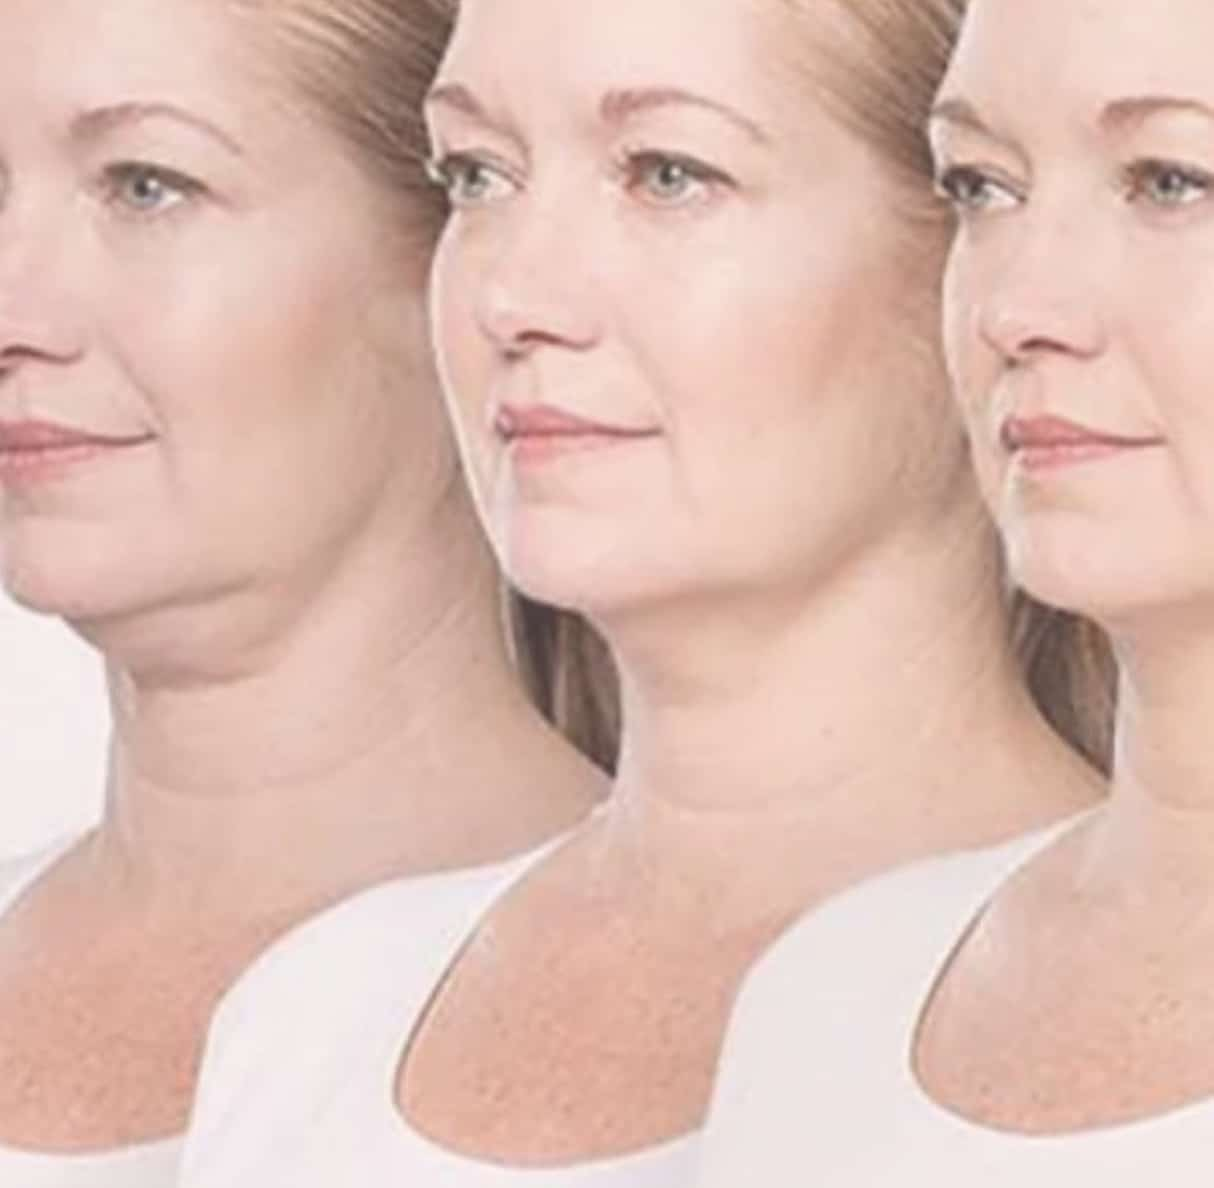 Three ladies with reducing chin size through using fat dissolving injections